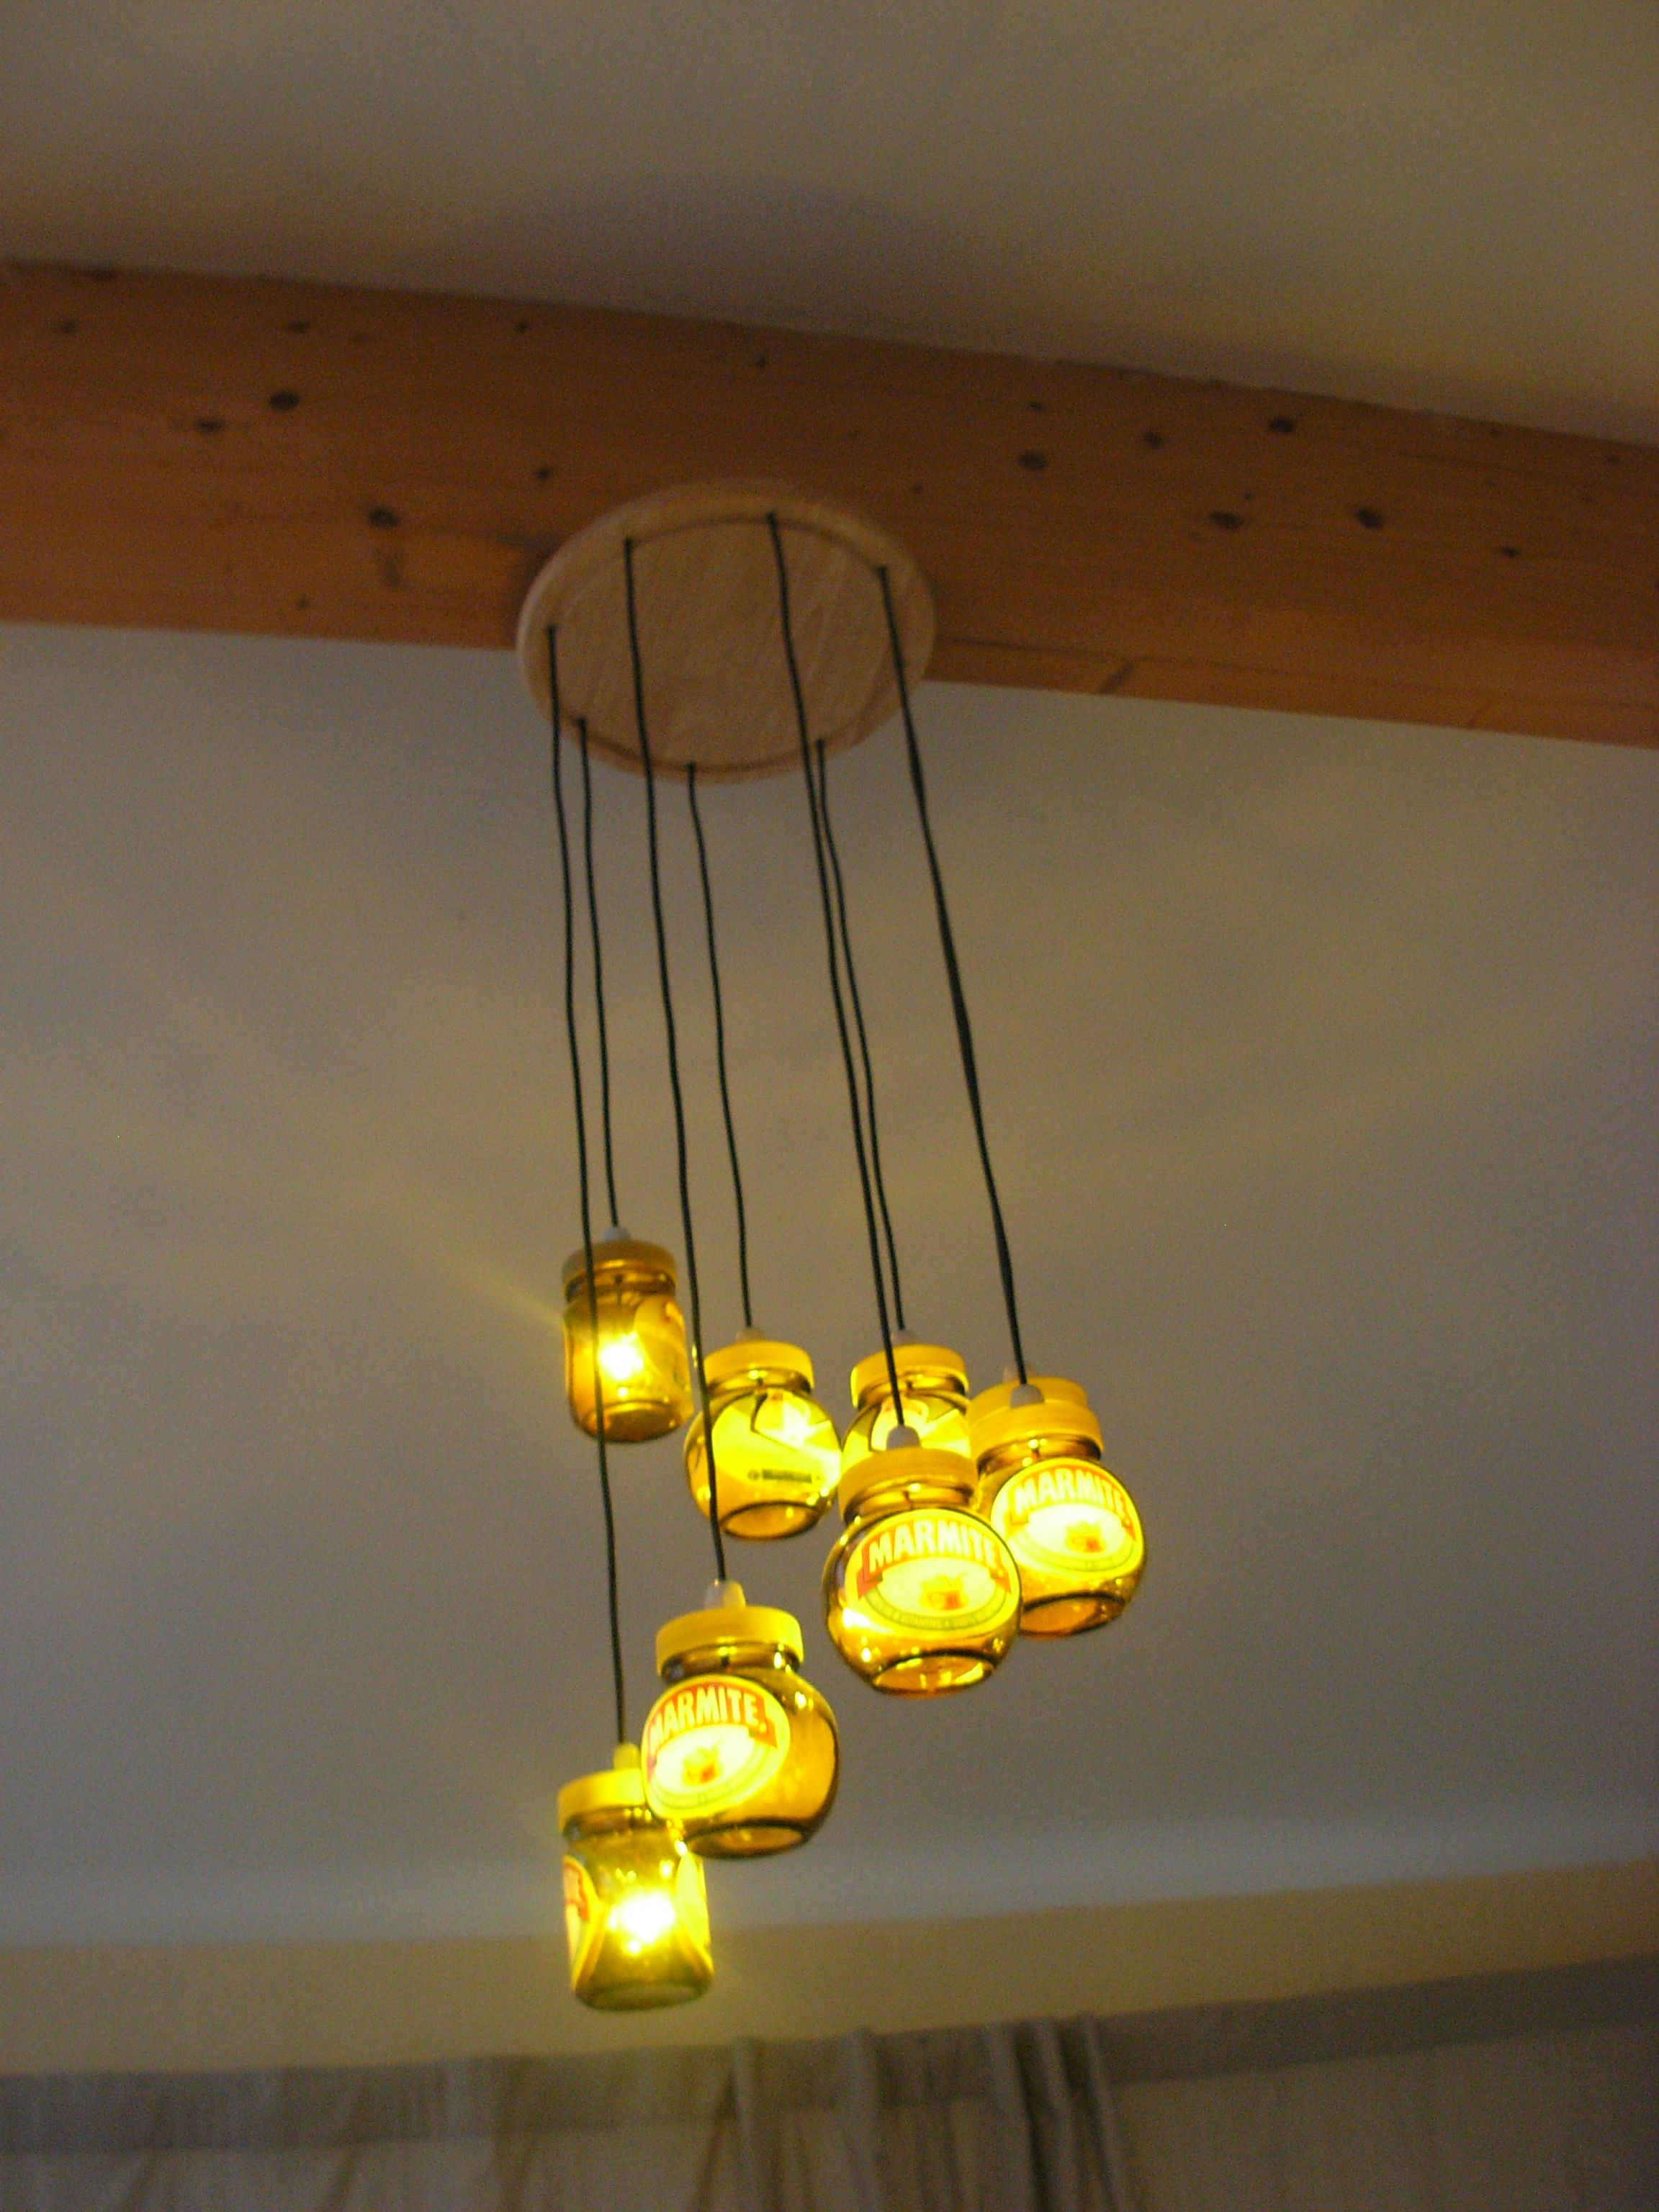 The Marmite Jar Chandelier in action MMMMARRMITE